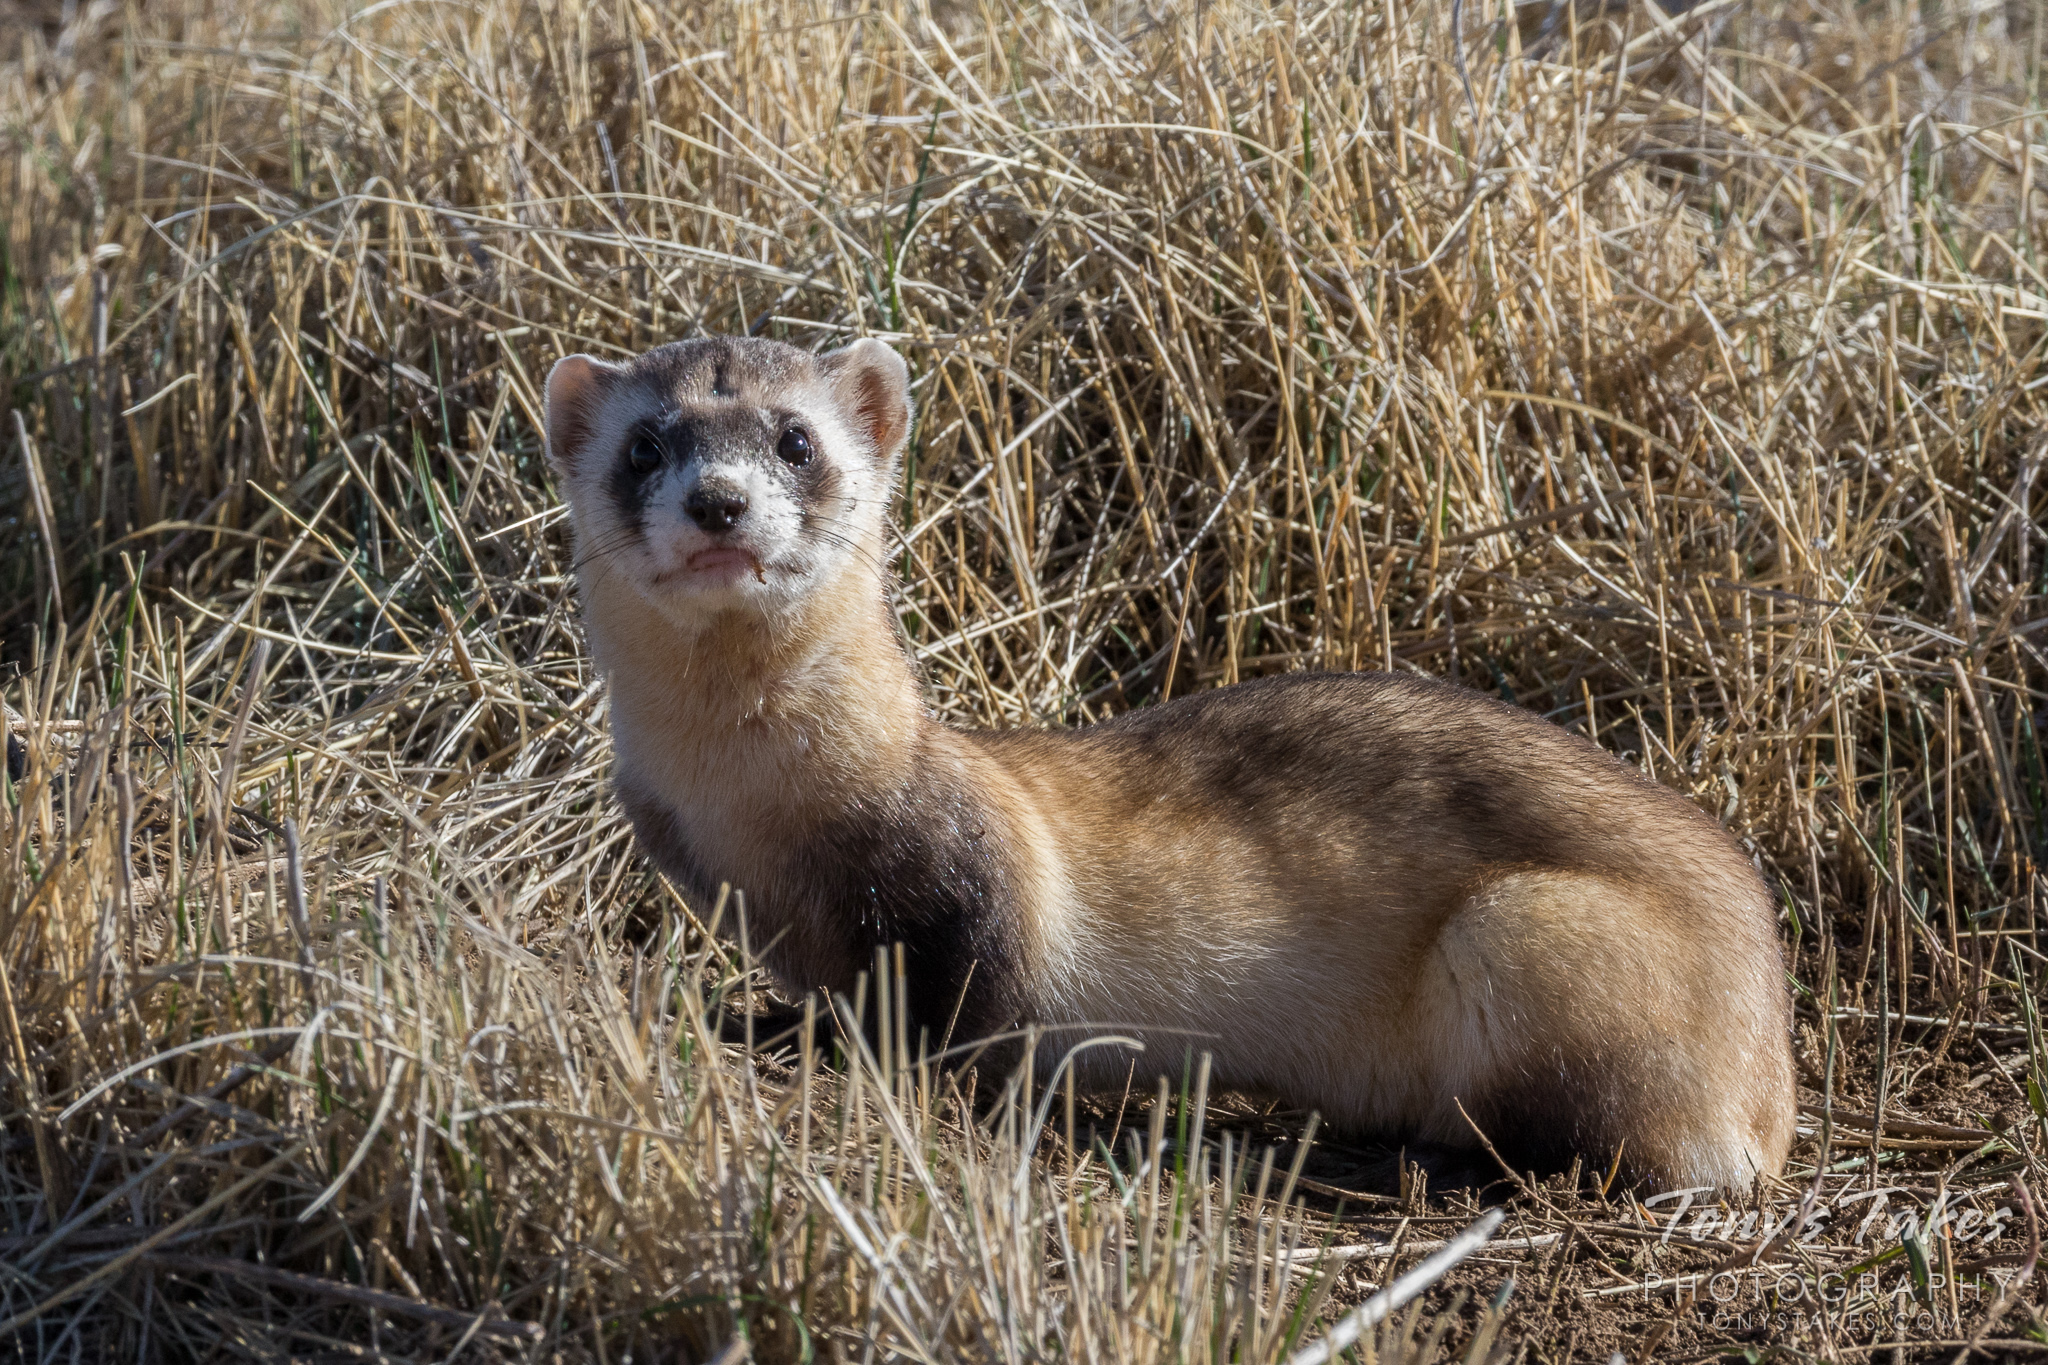 Posing endangered Black-footed Ferret